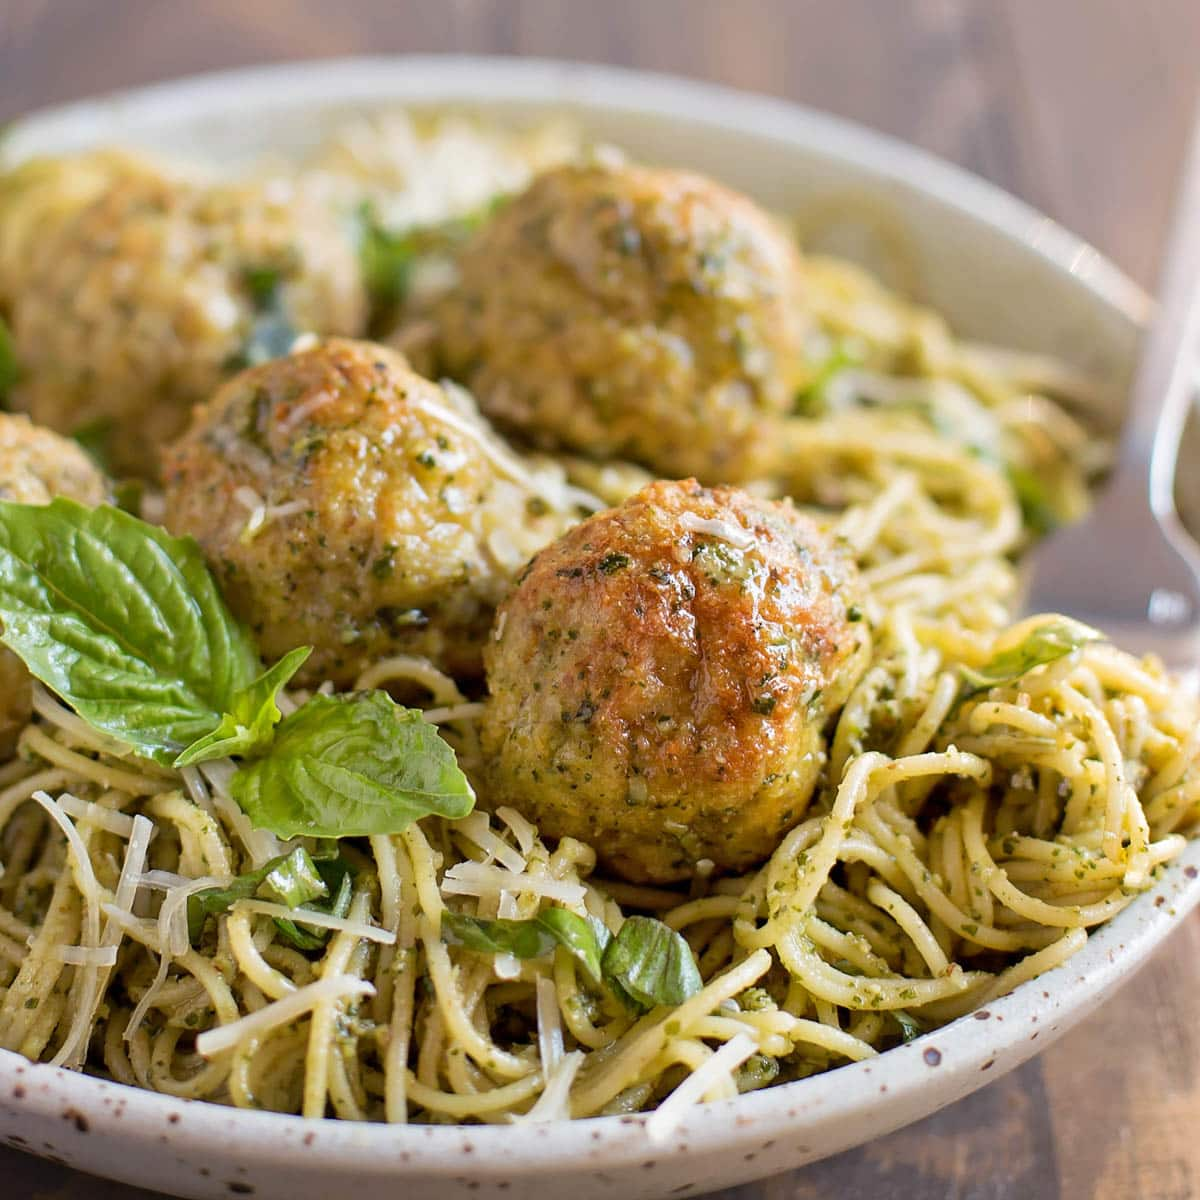 Chicken pesto meatballs served with a bowl of pesto pasta